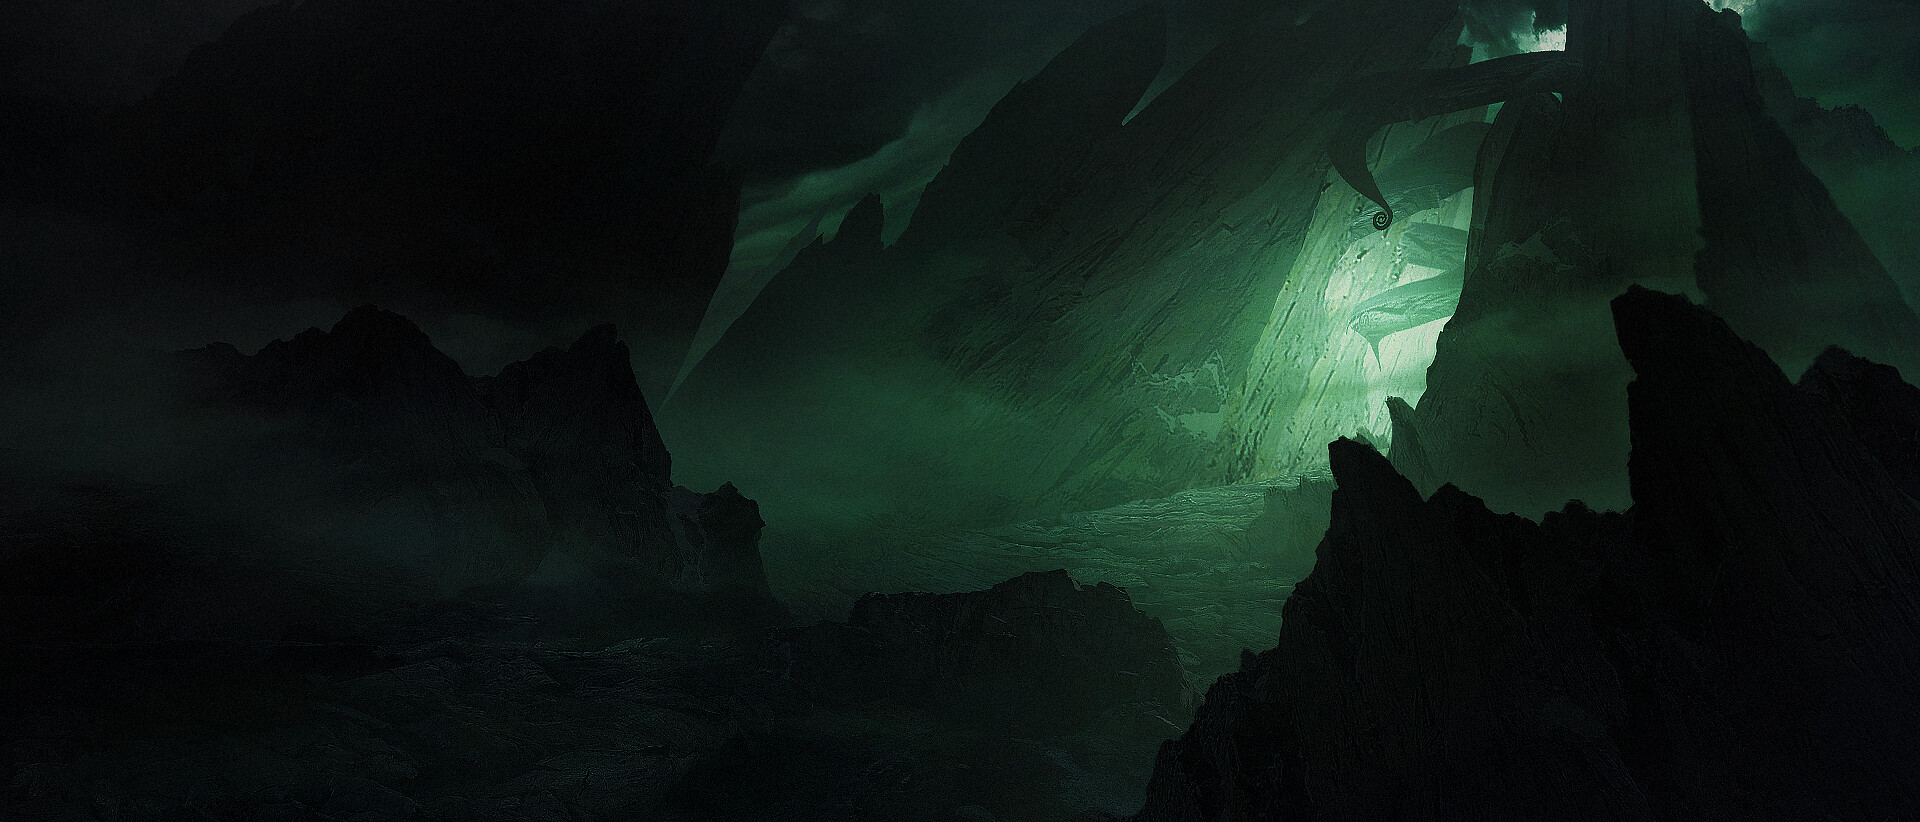 ArtStation - RAGNAROK - THE CAVE, Morgane Herbstmeyer